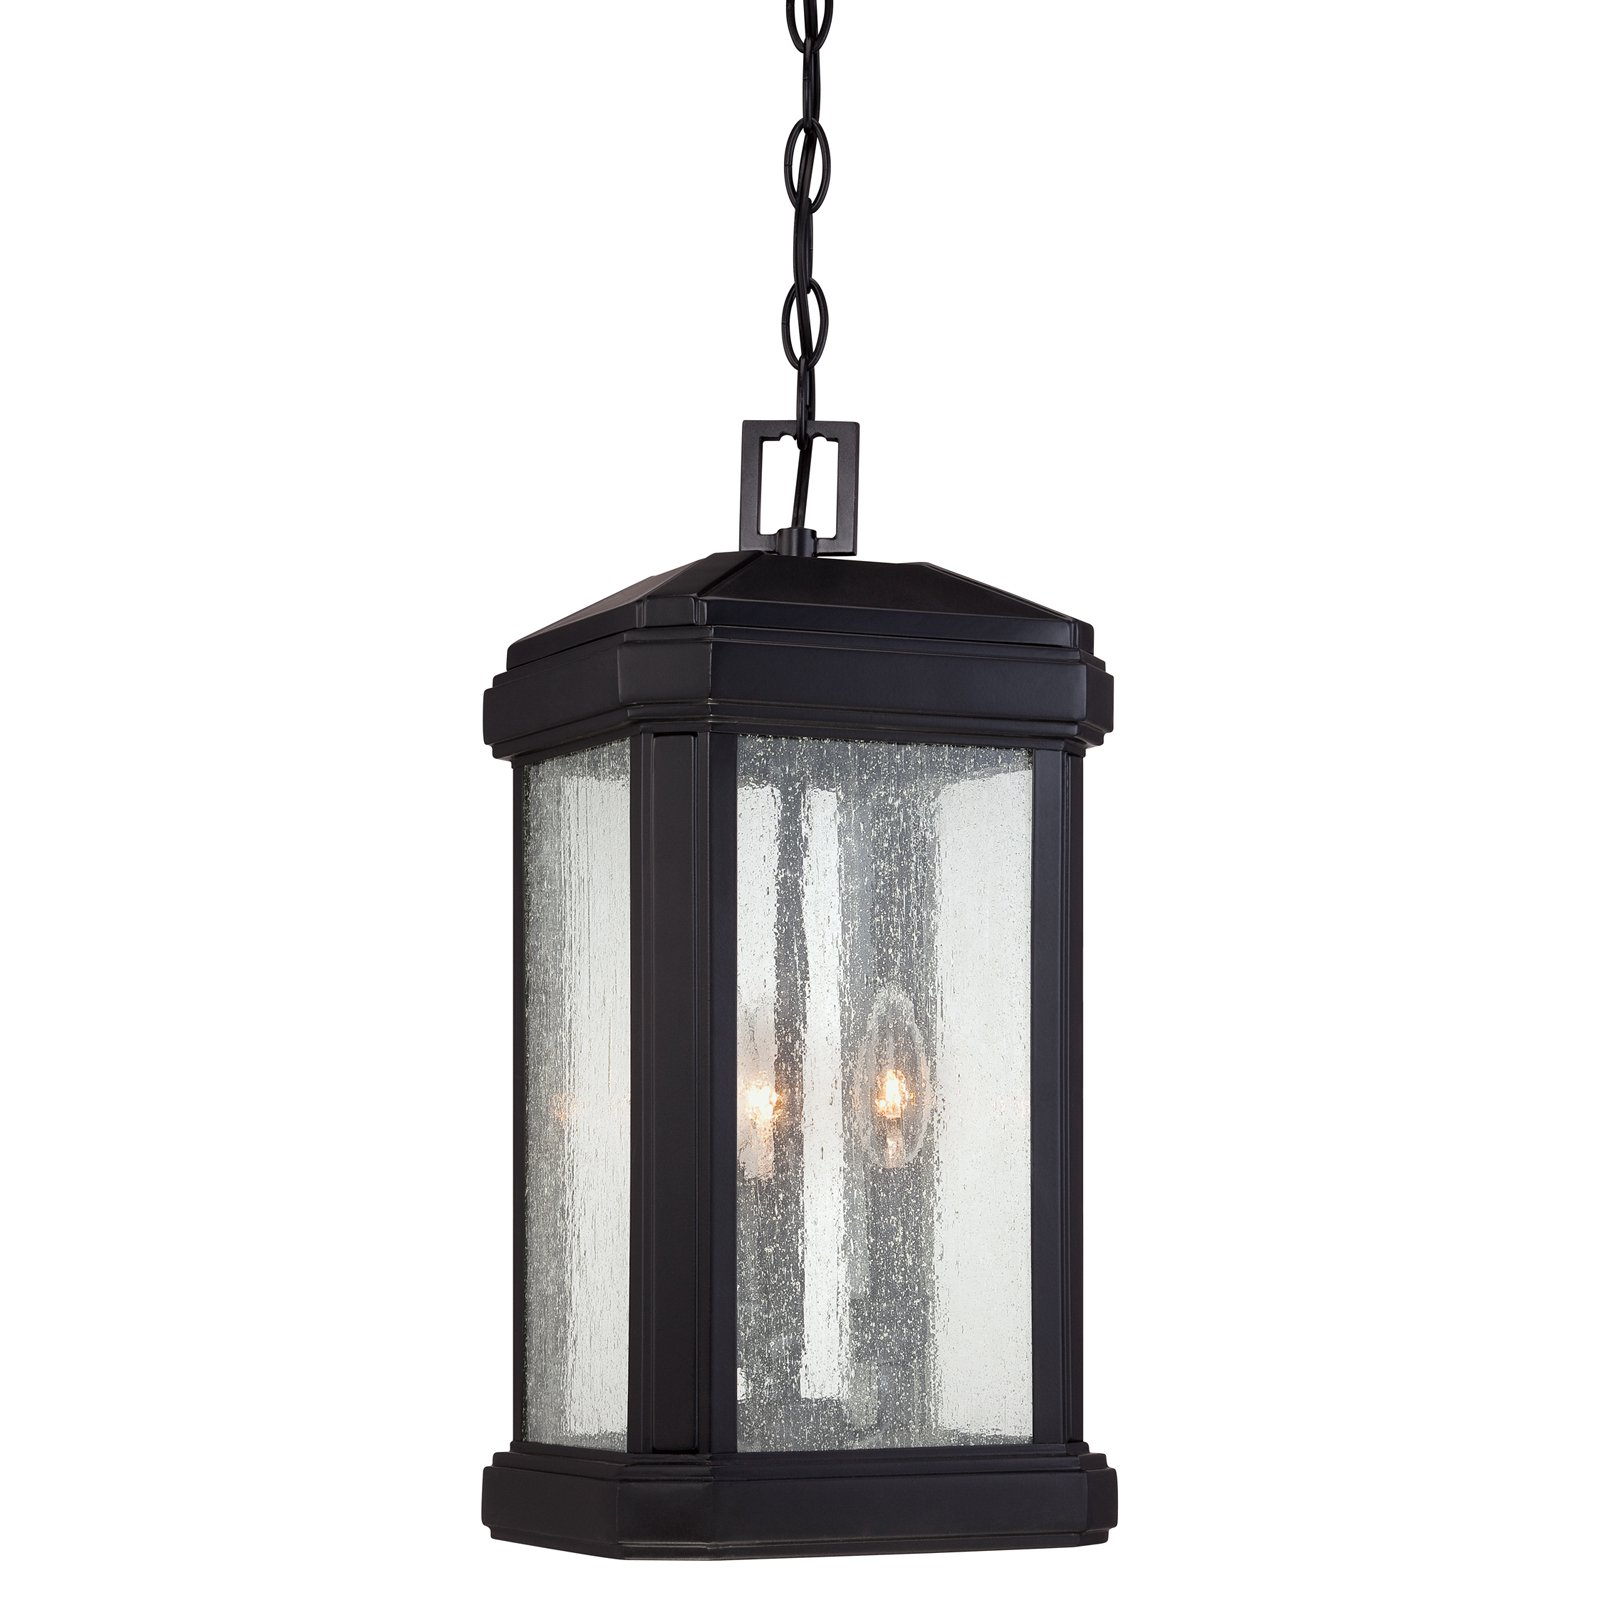 Quoizel Trumbull TML1908K Outdoor Hanging Lantern by Quoizel